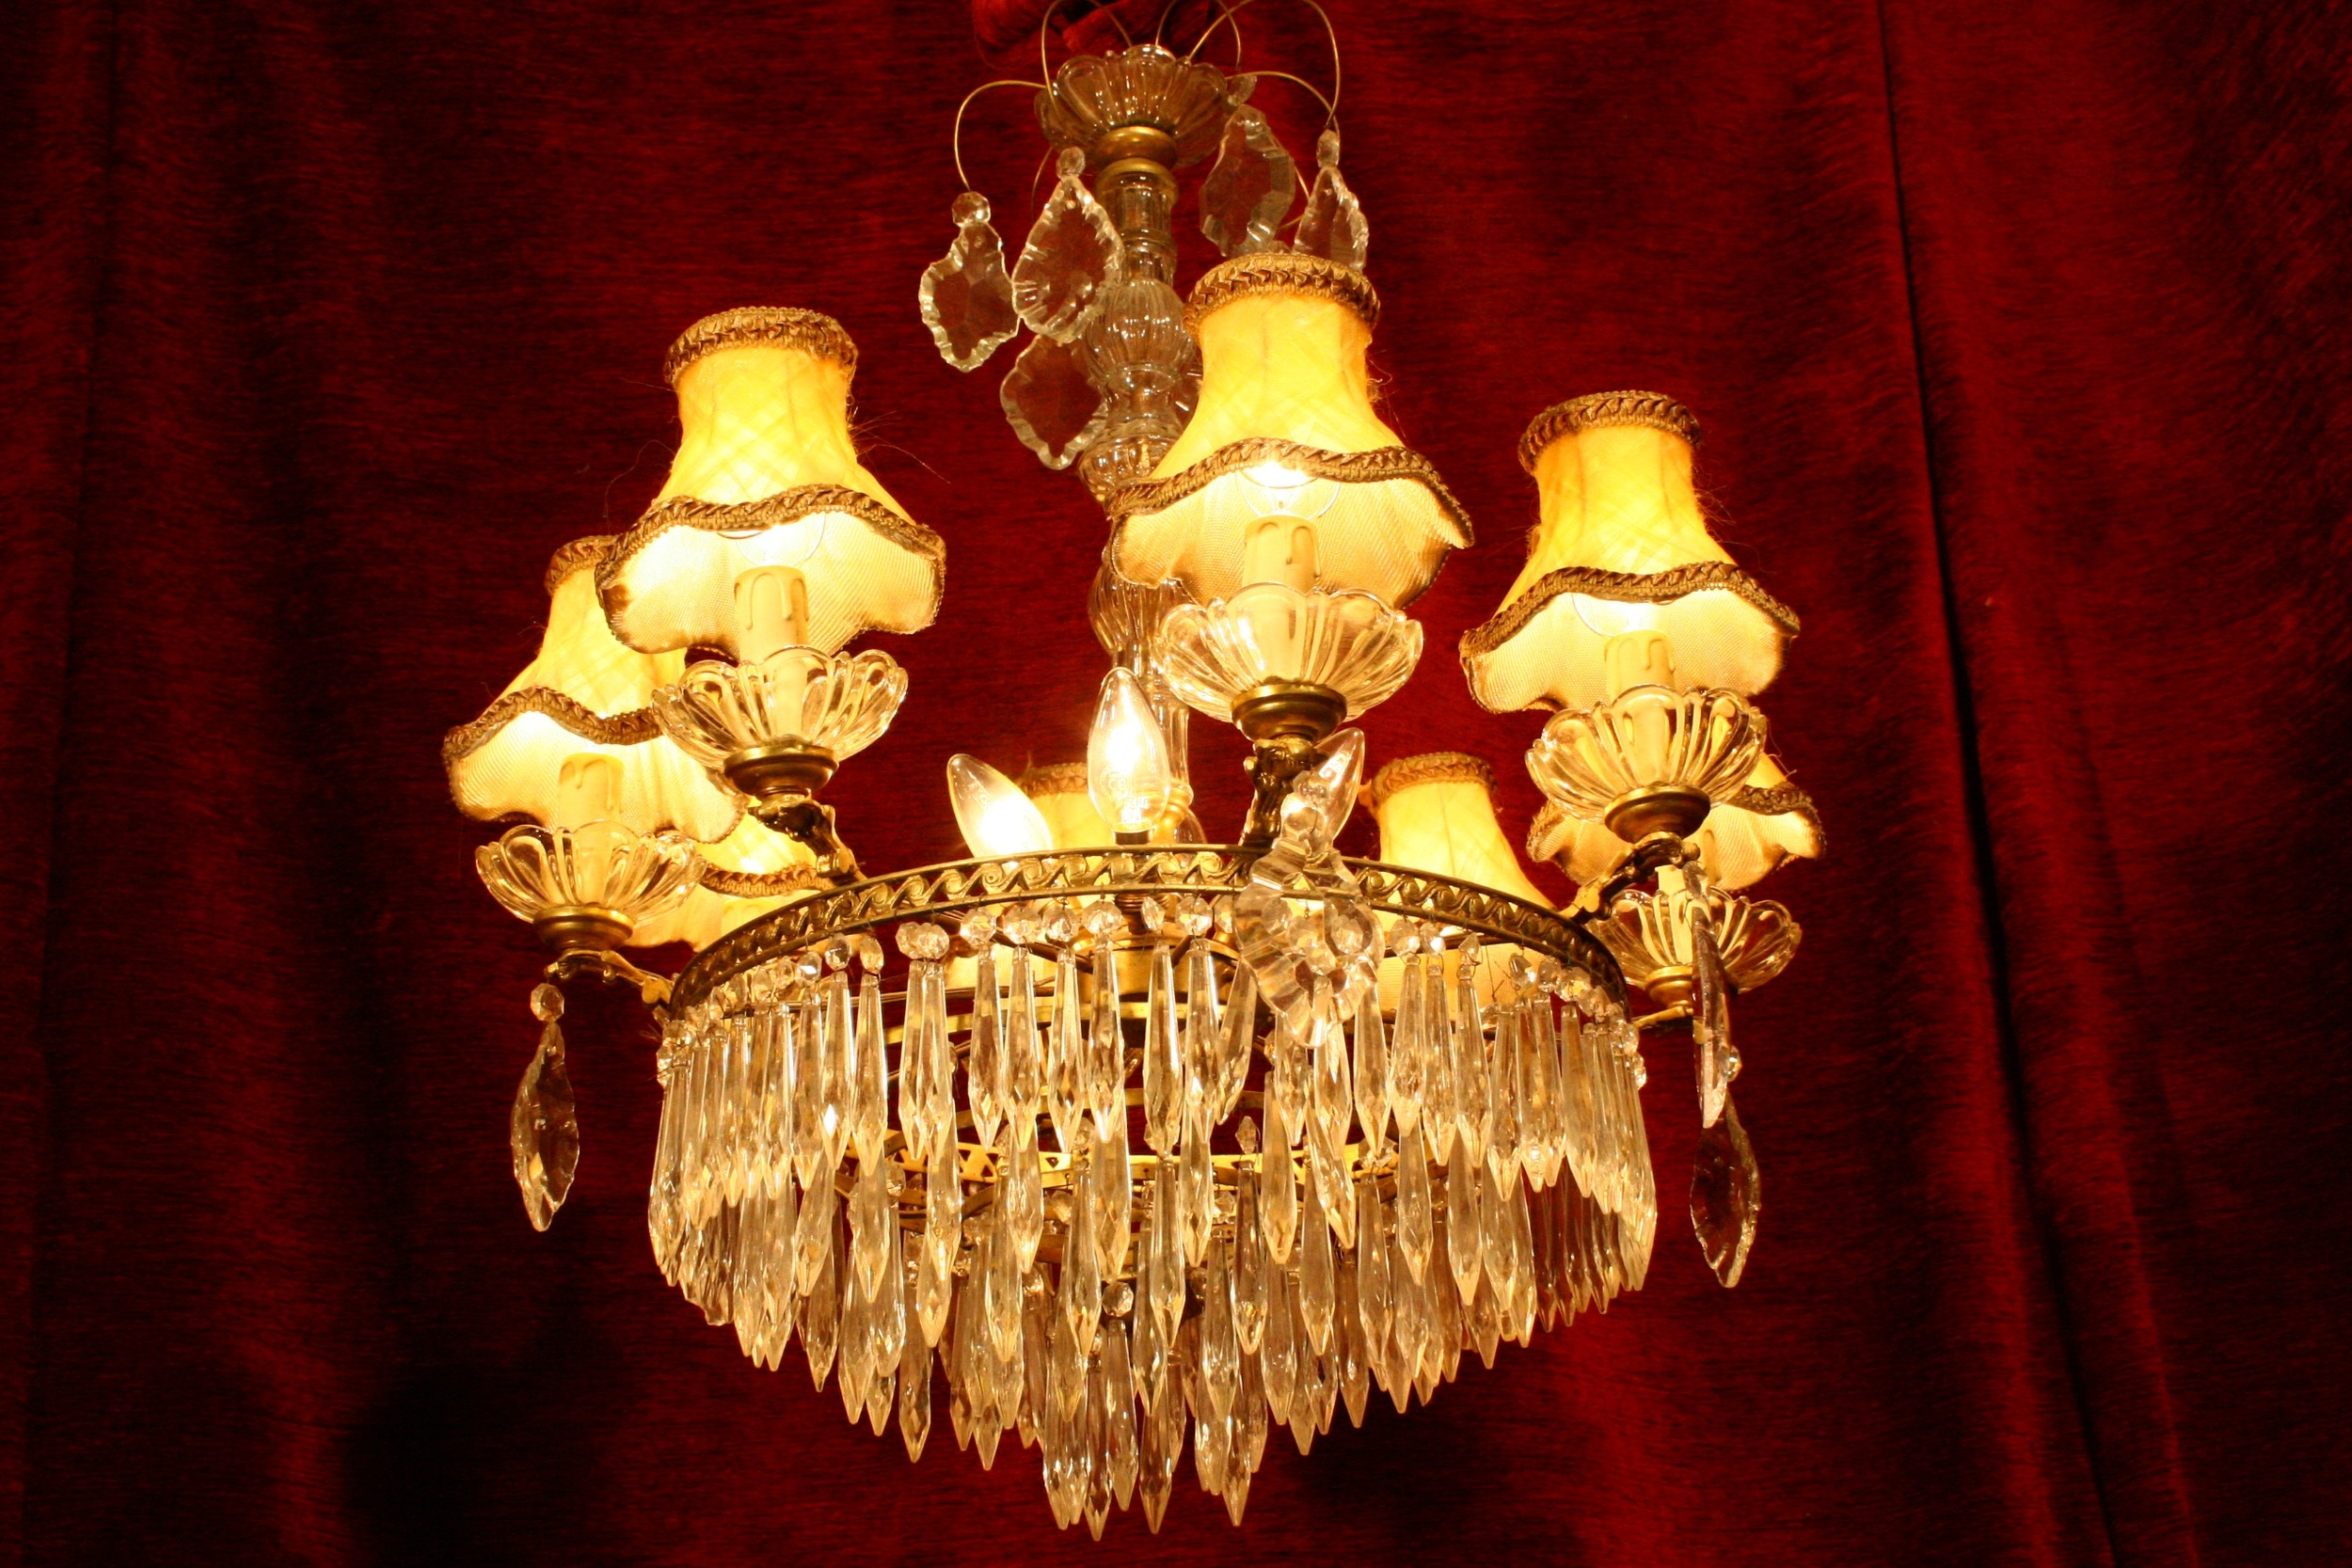 Renaissance Antique Dublin Ireland Chandelier spike crystals